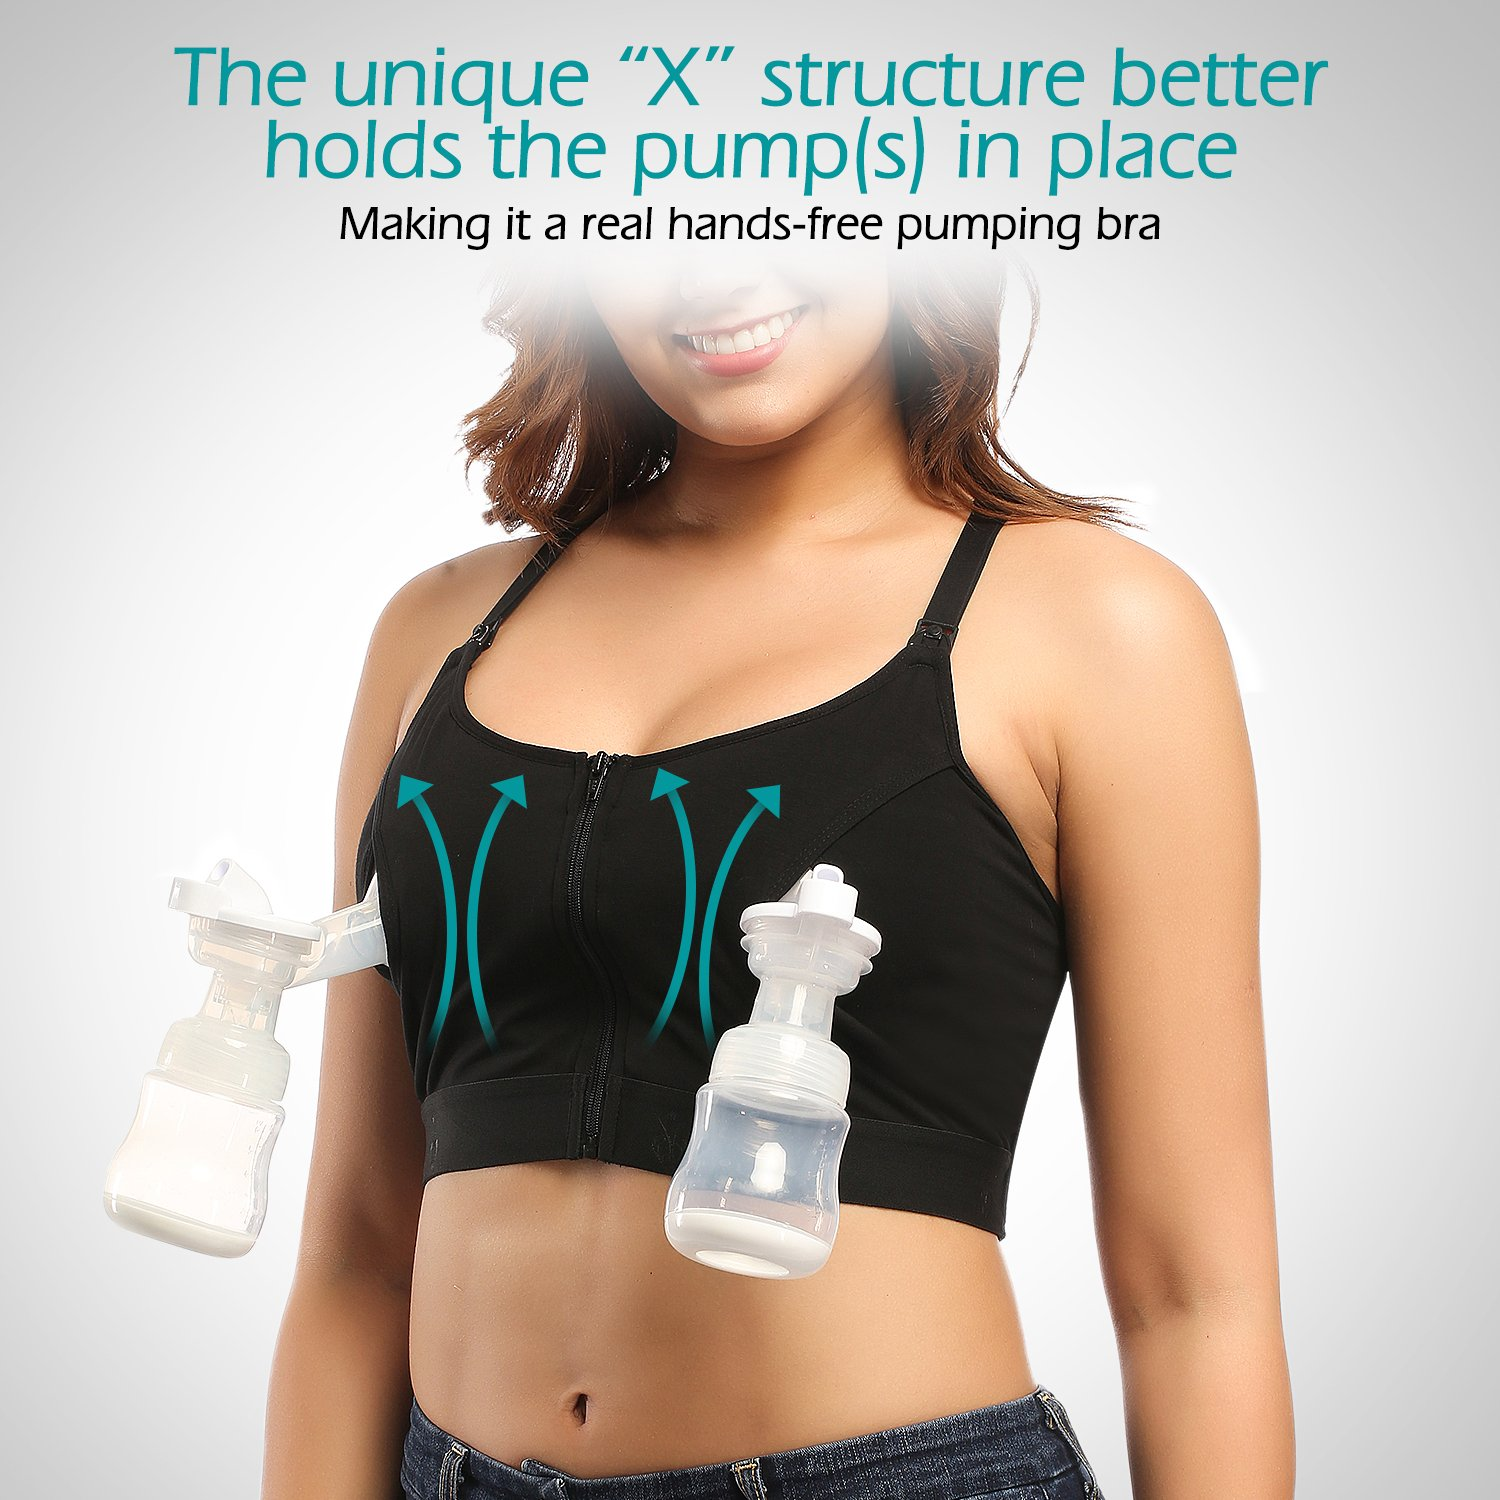 Hands-Free Pumping and Nursing Bra Adjustable Breast-Pumps Holding Bra by Momcozy - Suitable for Breastfeeding-Pumps by Medela, Lansinoh, Philips AVENT, Bellema, Spectra, Evenflo (Medium, Black) by Momcozy (Image #4)